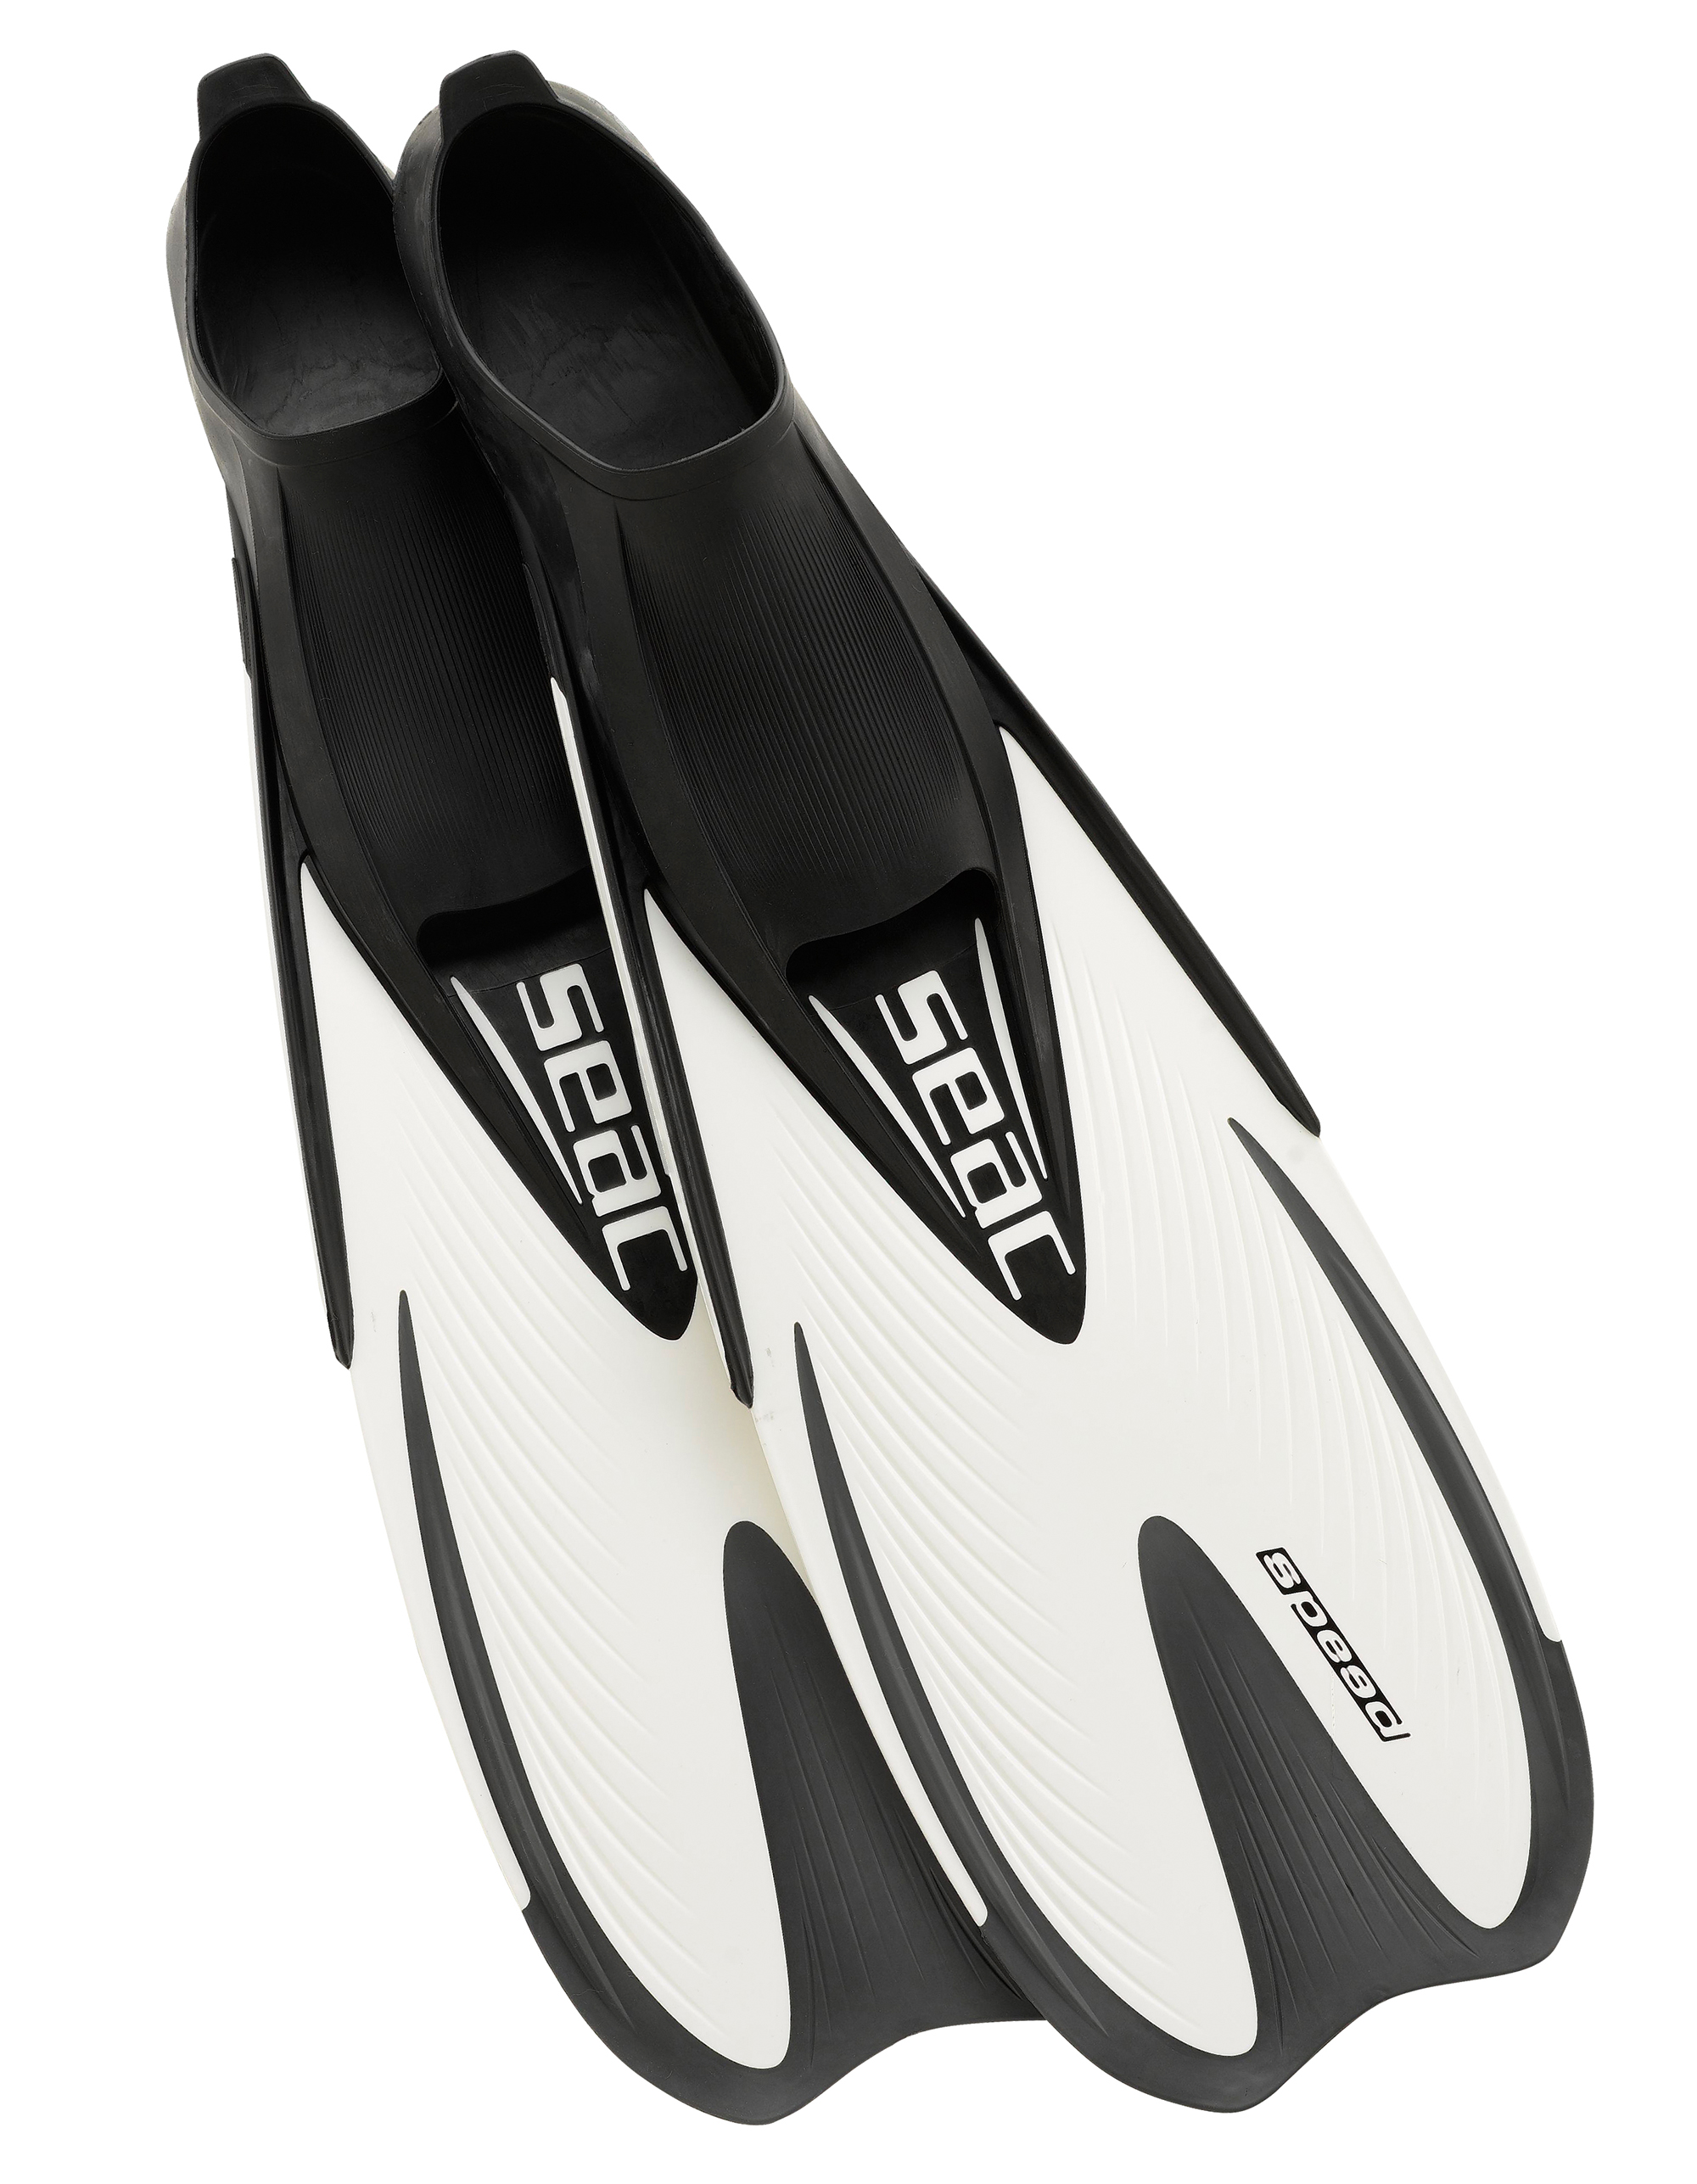 Seac Speed Full Foot Pocket Snorkeling Fin by